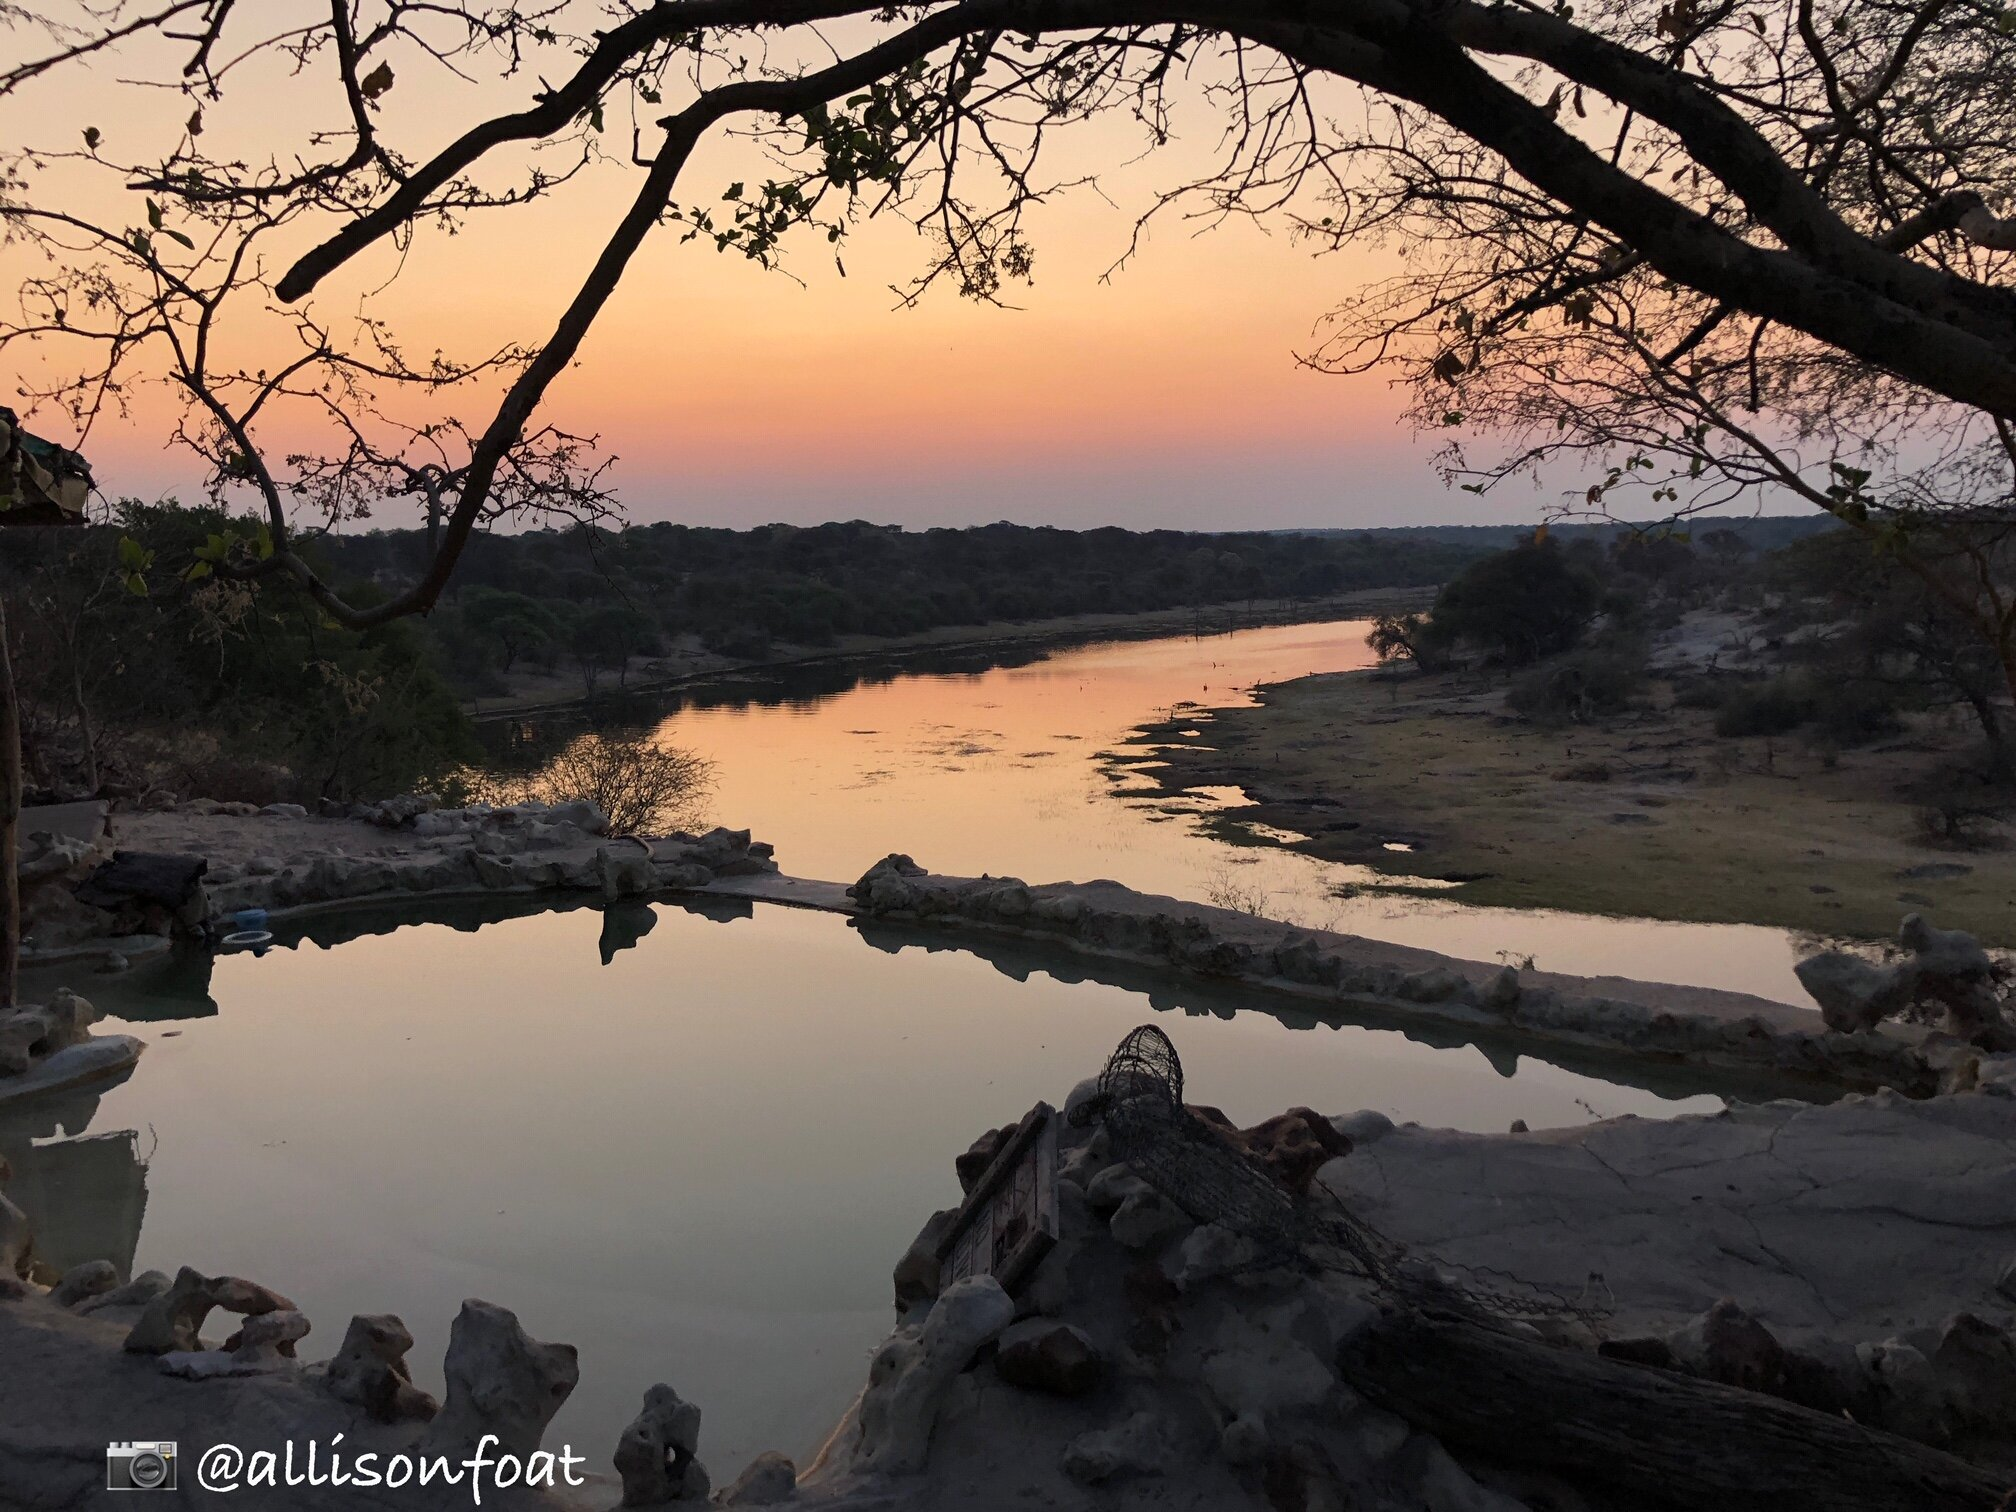 CapeTalk Travel guide: Botswana.